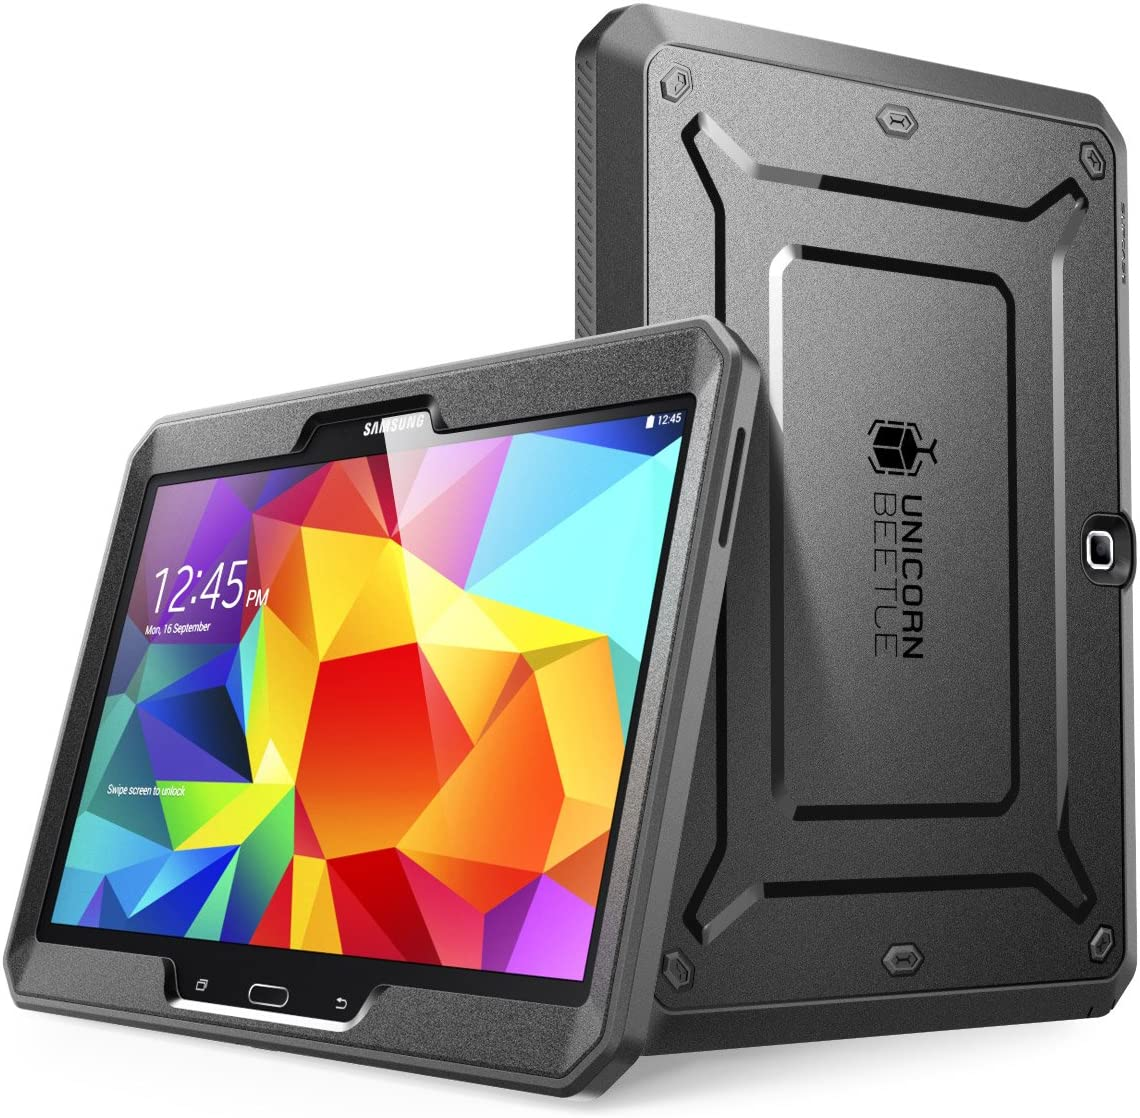 Samsung Galaxy Tab 4 10.1 Case, SUPCASE Heavy Duty Case for Galaxy Tab 4 10.1 Tablet with Built-in Screen Protector (Black/Black), Dual Layer Design + Impact Resistant Bumper